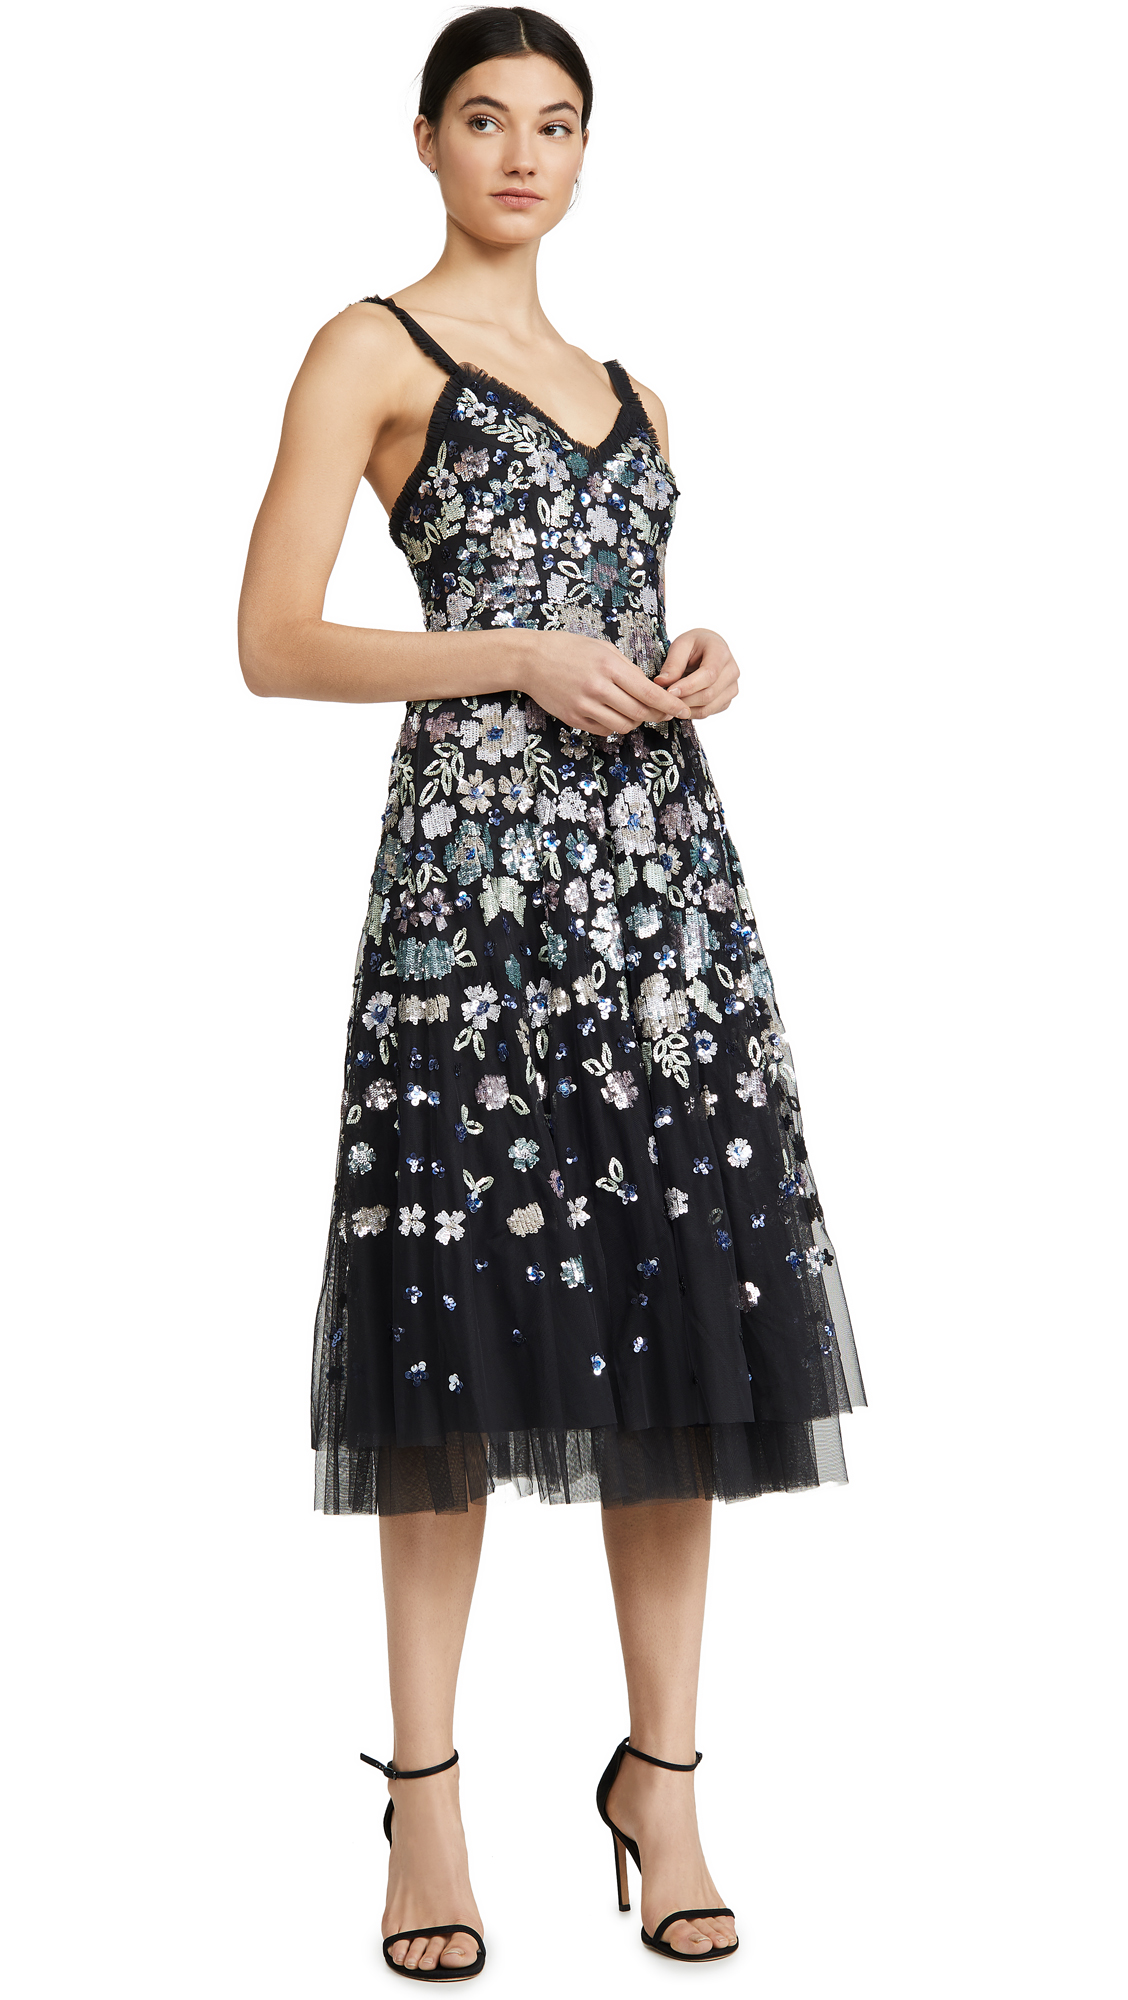 Needle & Thread Wildflower Sequin Midi Dress - 30% Off Sale